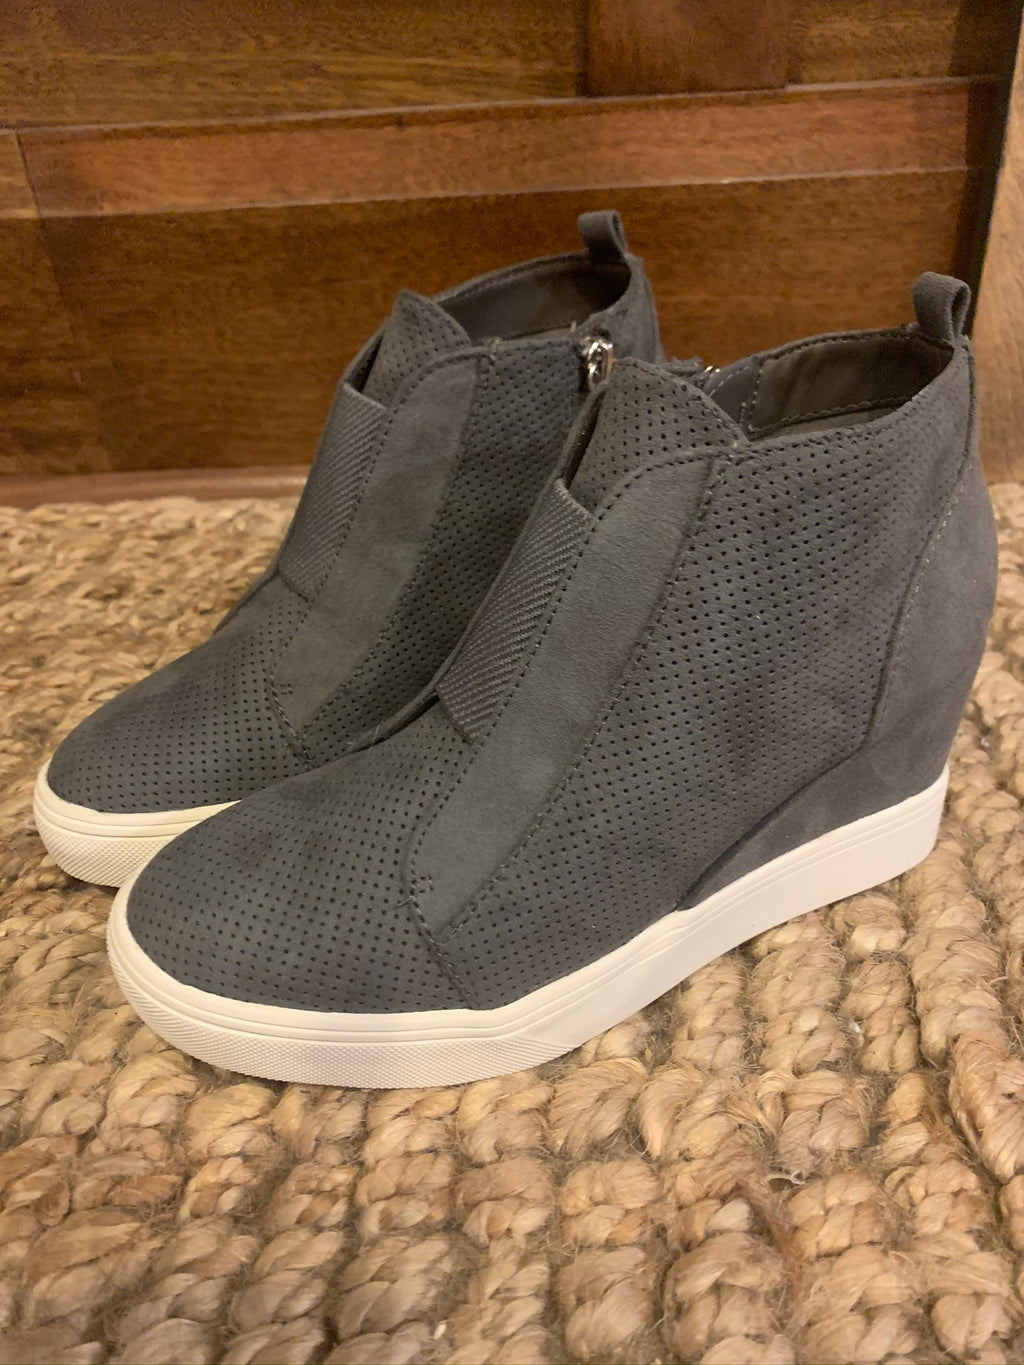 Grey wedge sneakers with zipper detail on the side